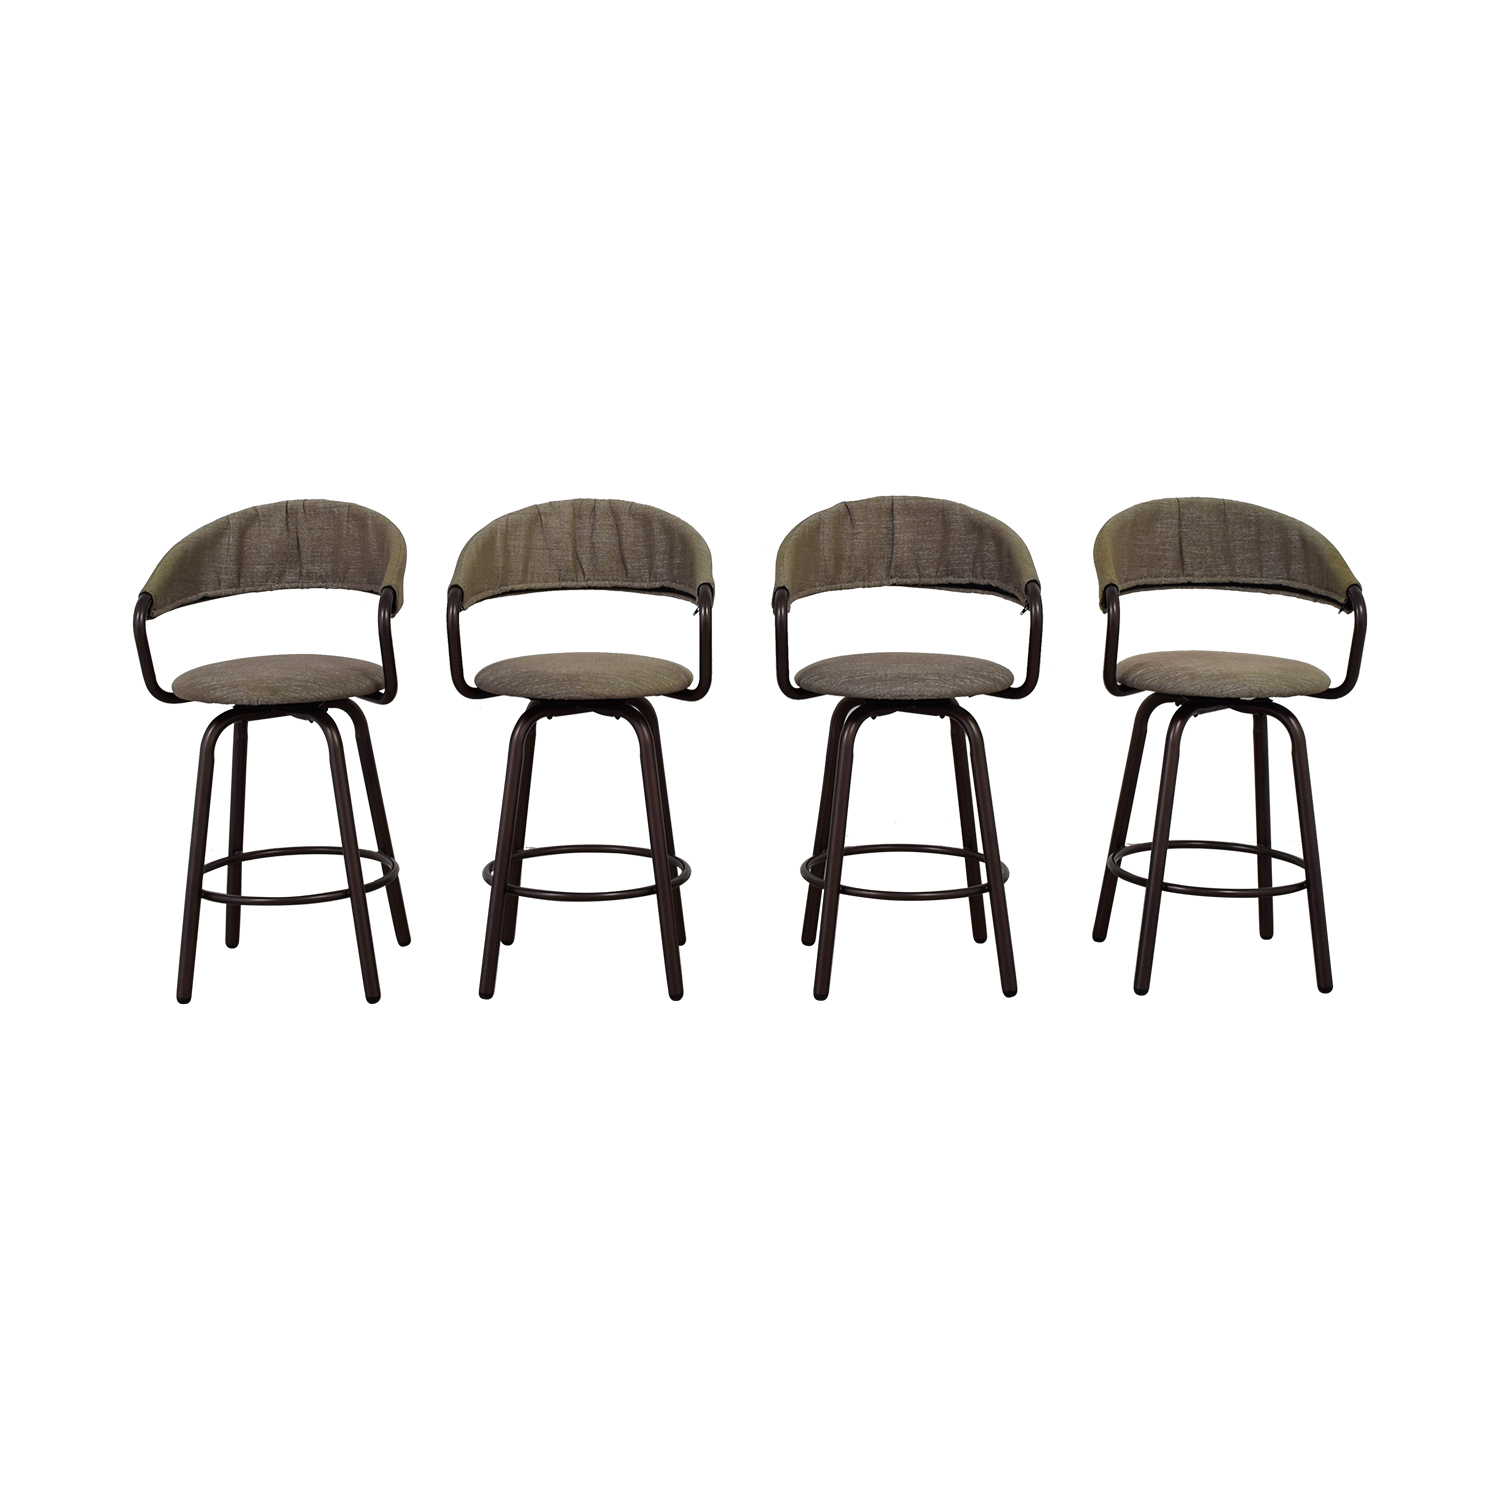 High Top Fabric Stools dimensions